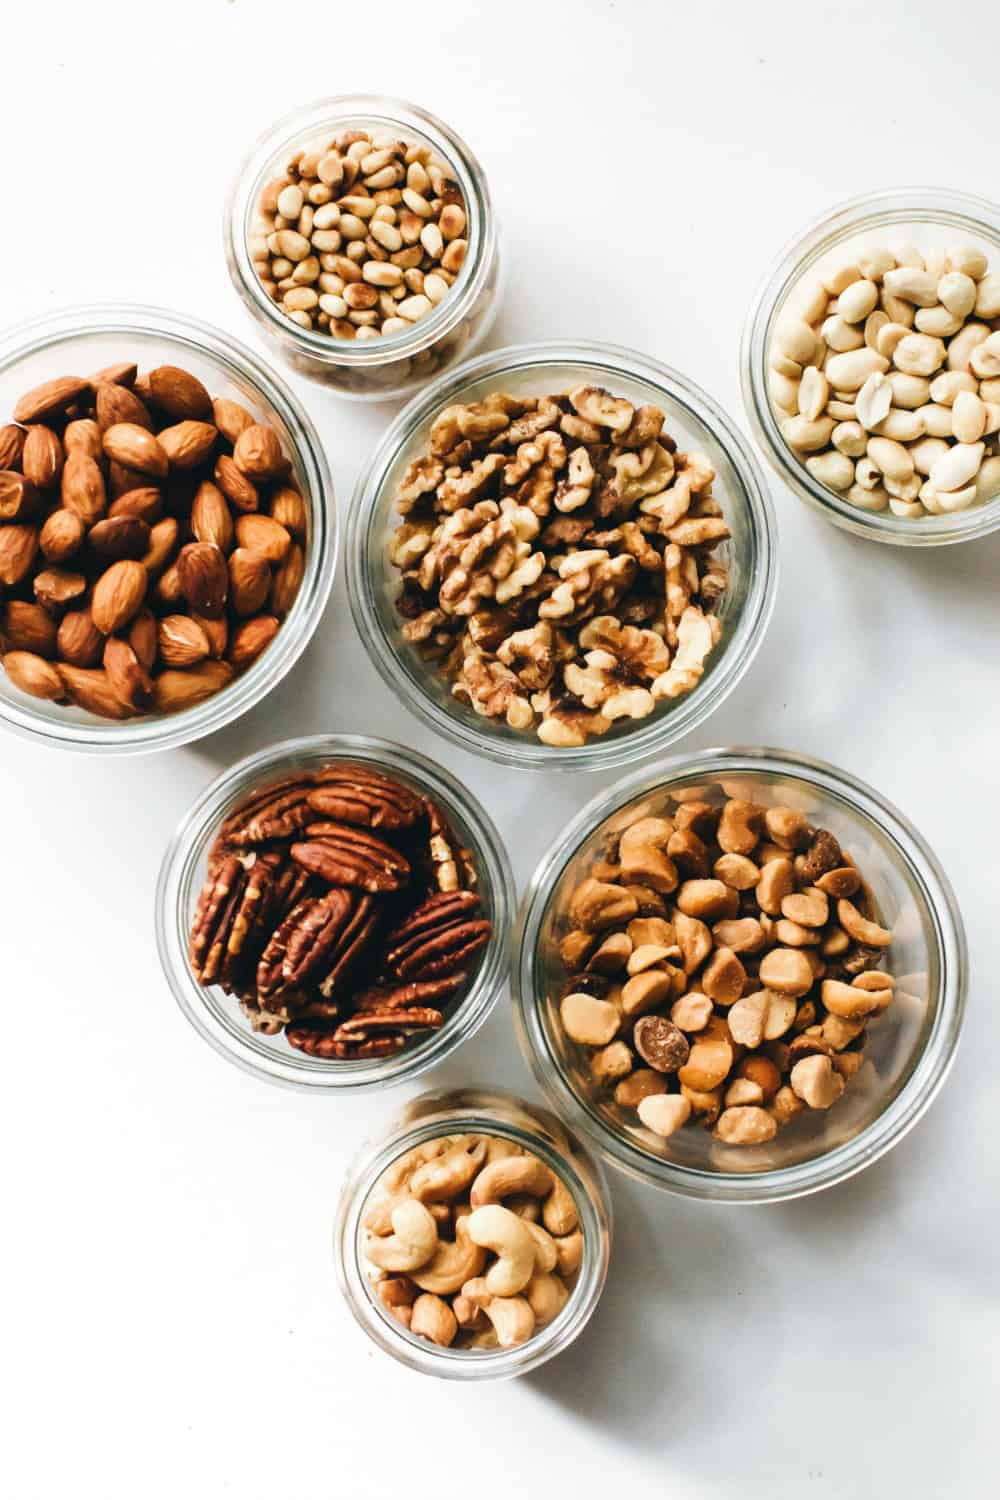 Assorted toasted nuts in glass jars